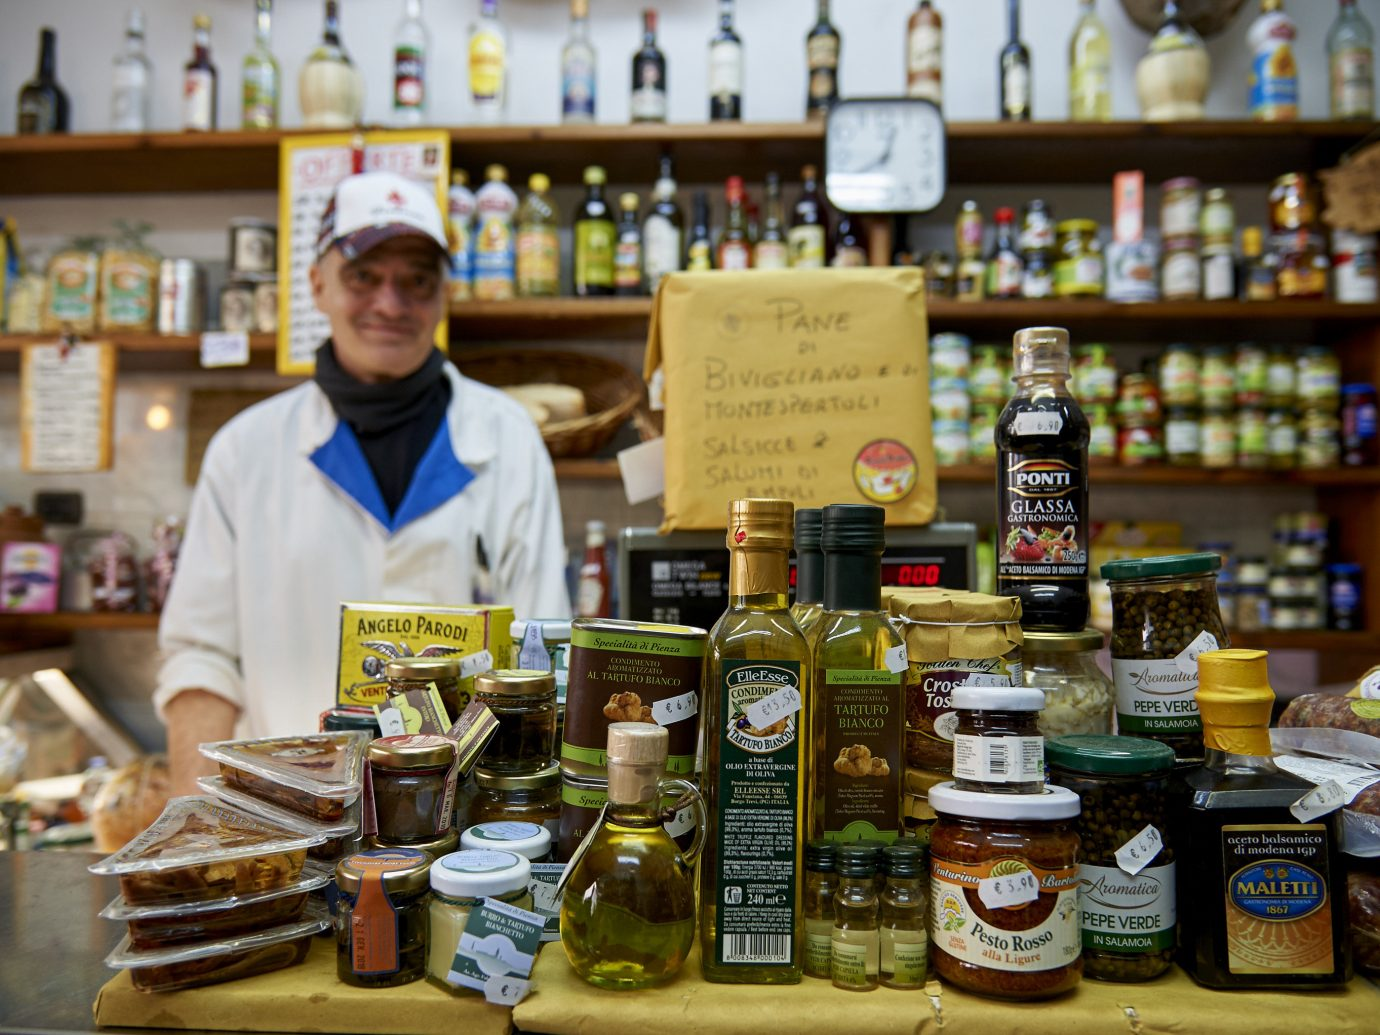 Trip Ideas table bottle food grocery store indoor distilled beverage whole food supermarket retail liquor store delicatessen alcohol grocer convenience food Drink shopkeeper produce liqueur product service counter convenience store cluttered Shop